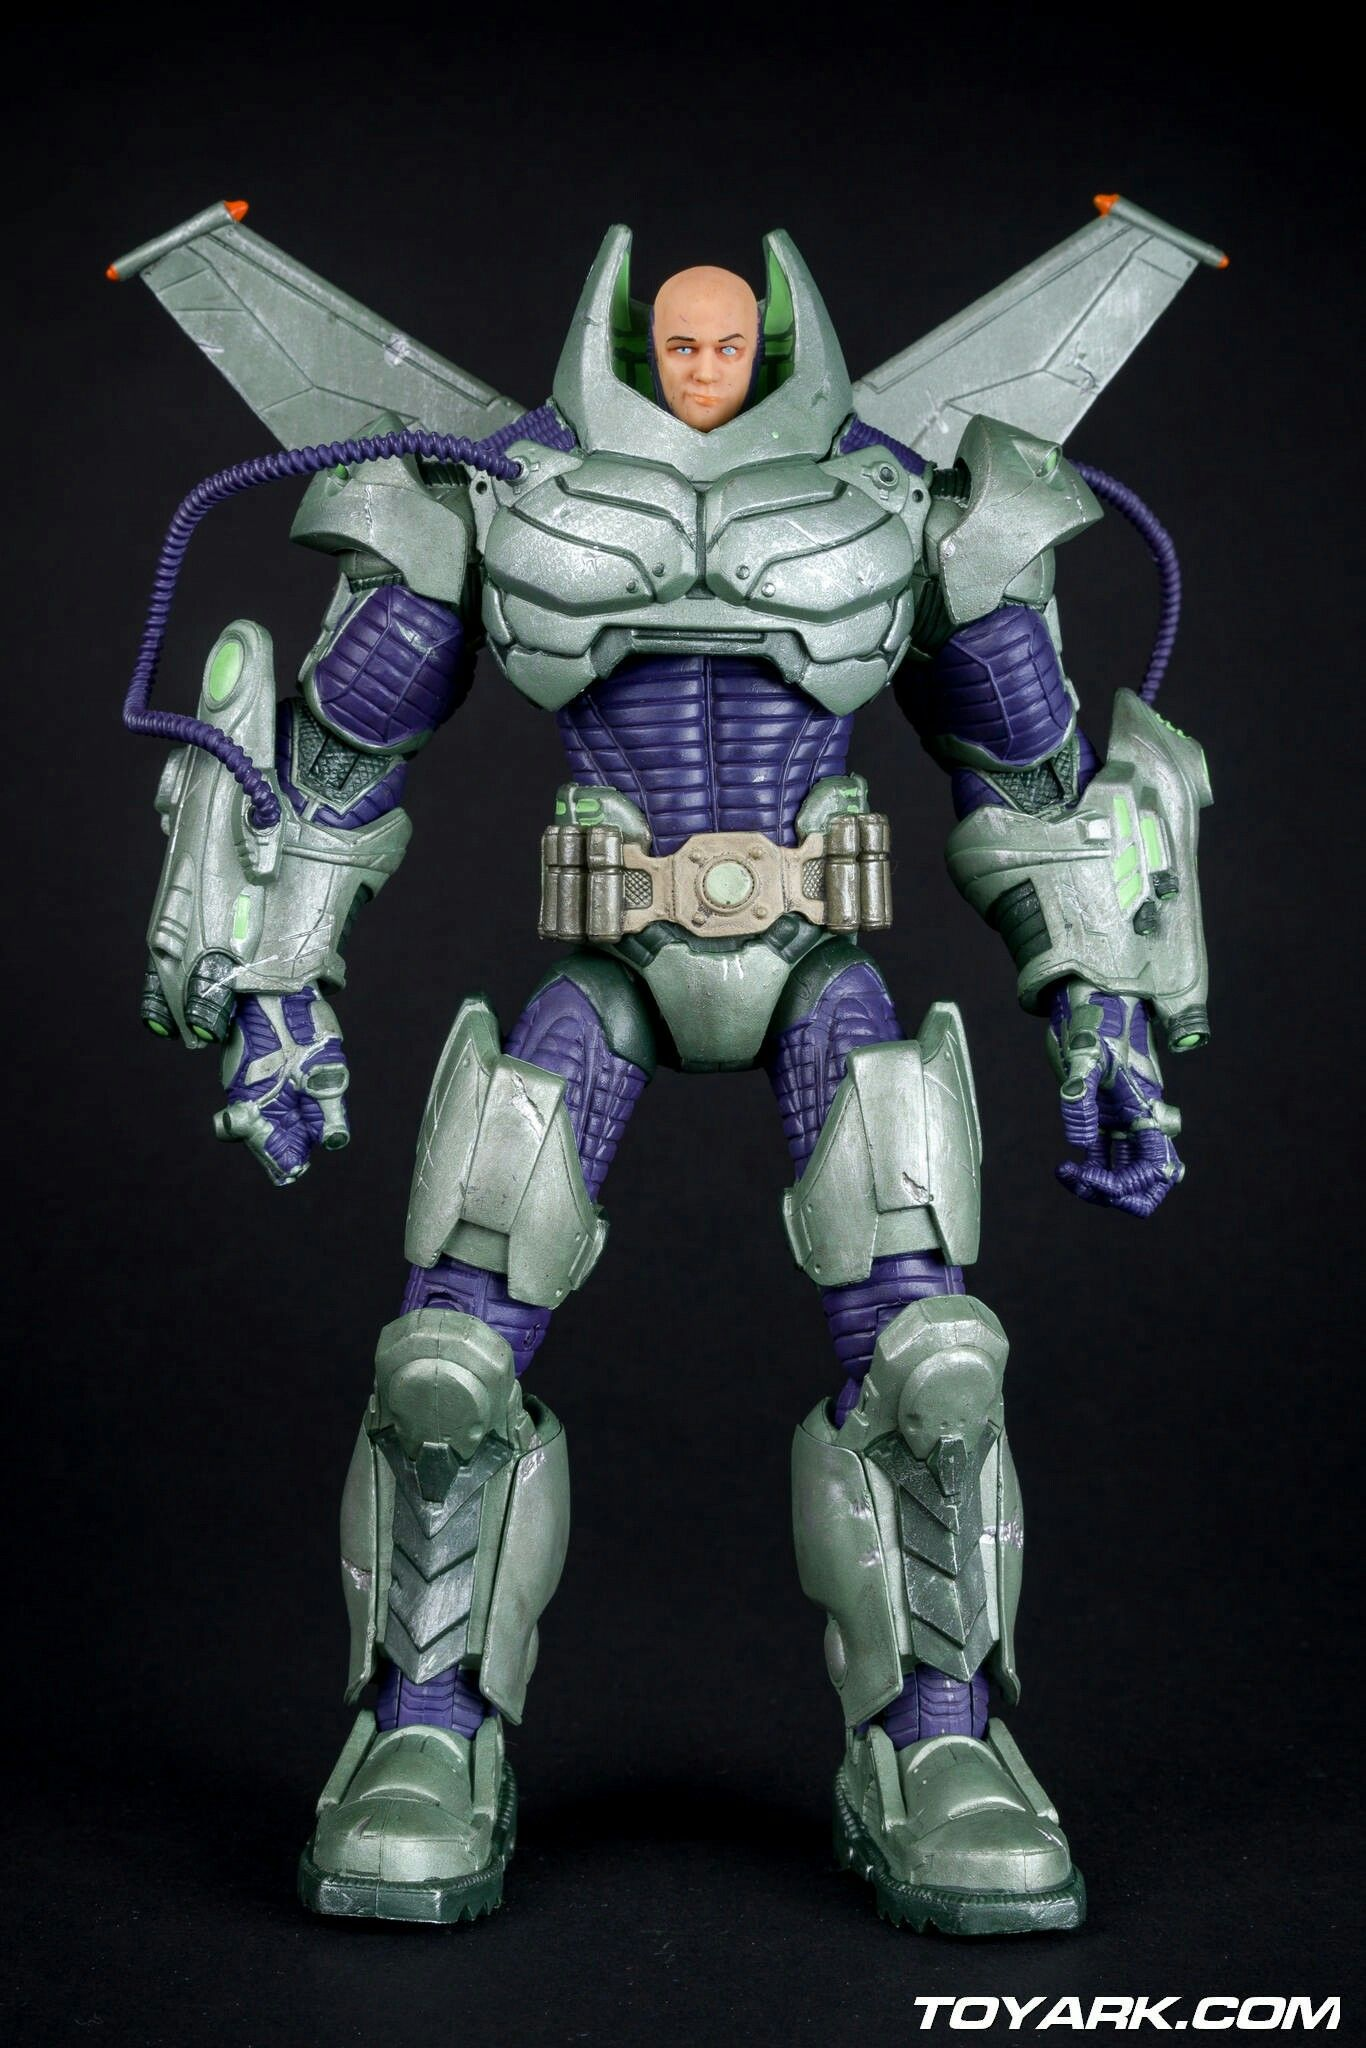 DC Collectibles Lex Luthor Battle Armor Deluxe - price should NOT exceed $60